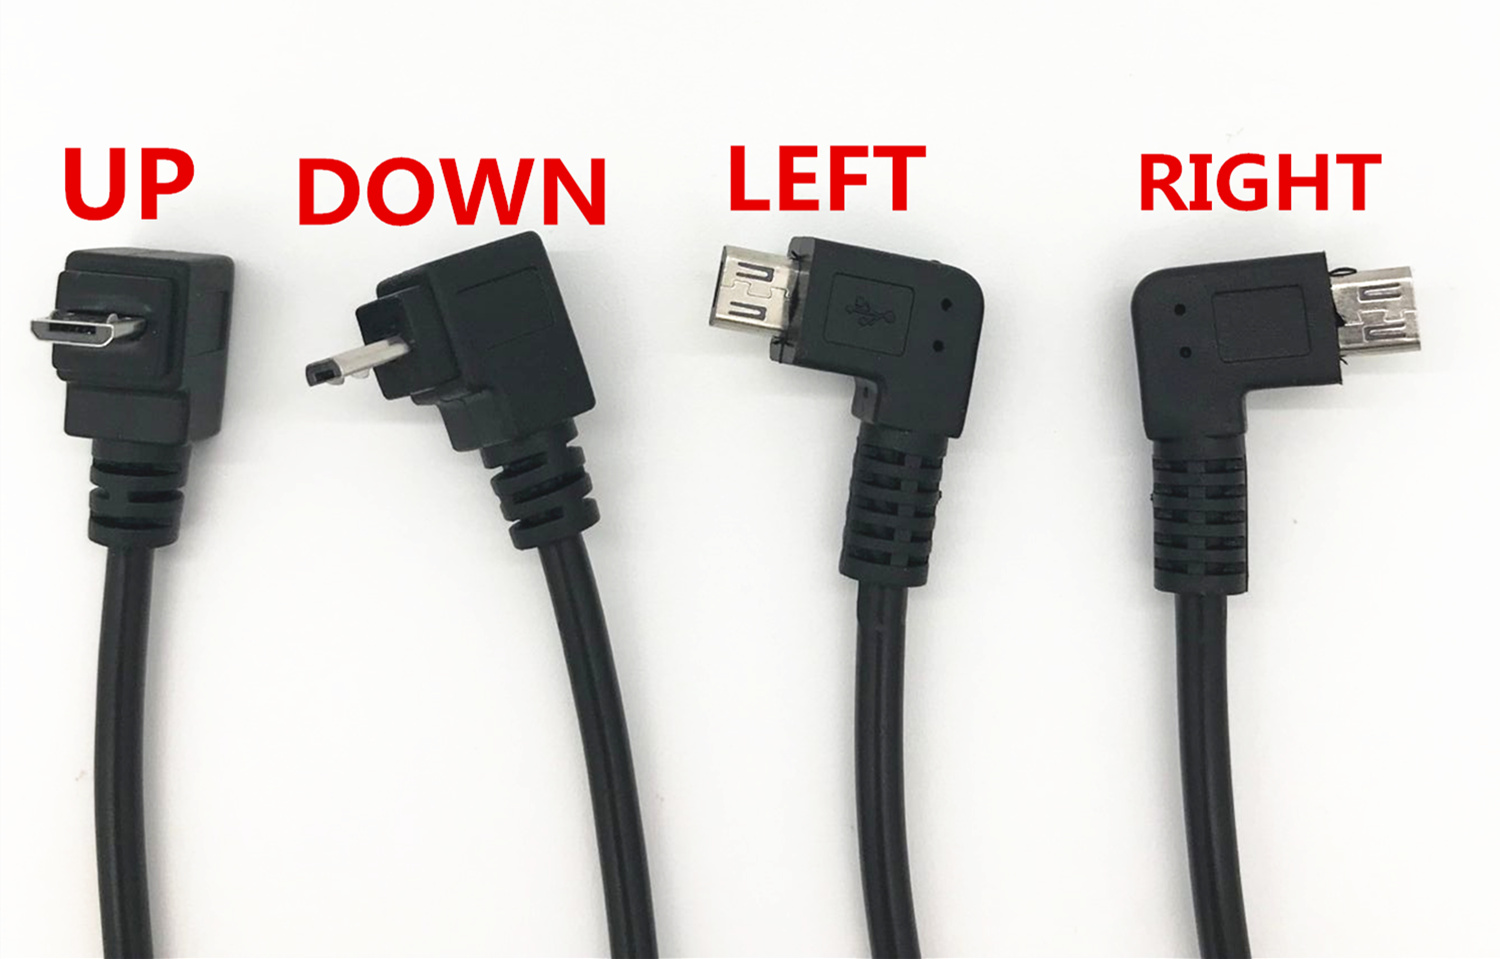 USB Micro 5P Female To 5P Male, Left/Right/Down/Up ,Angled Extension Cable Adapter